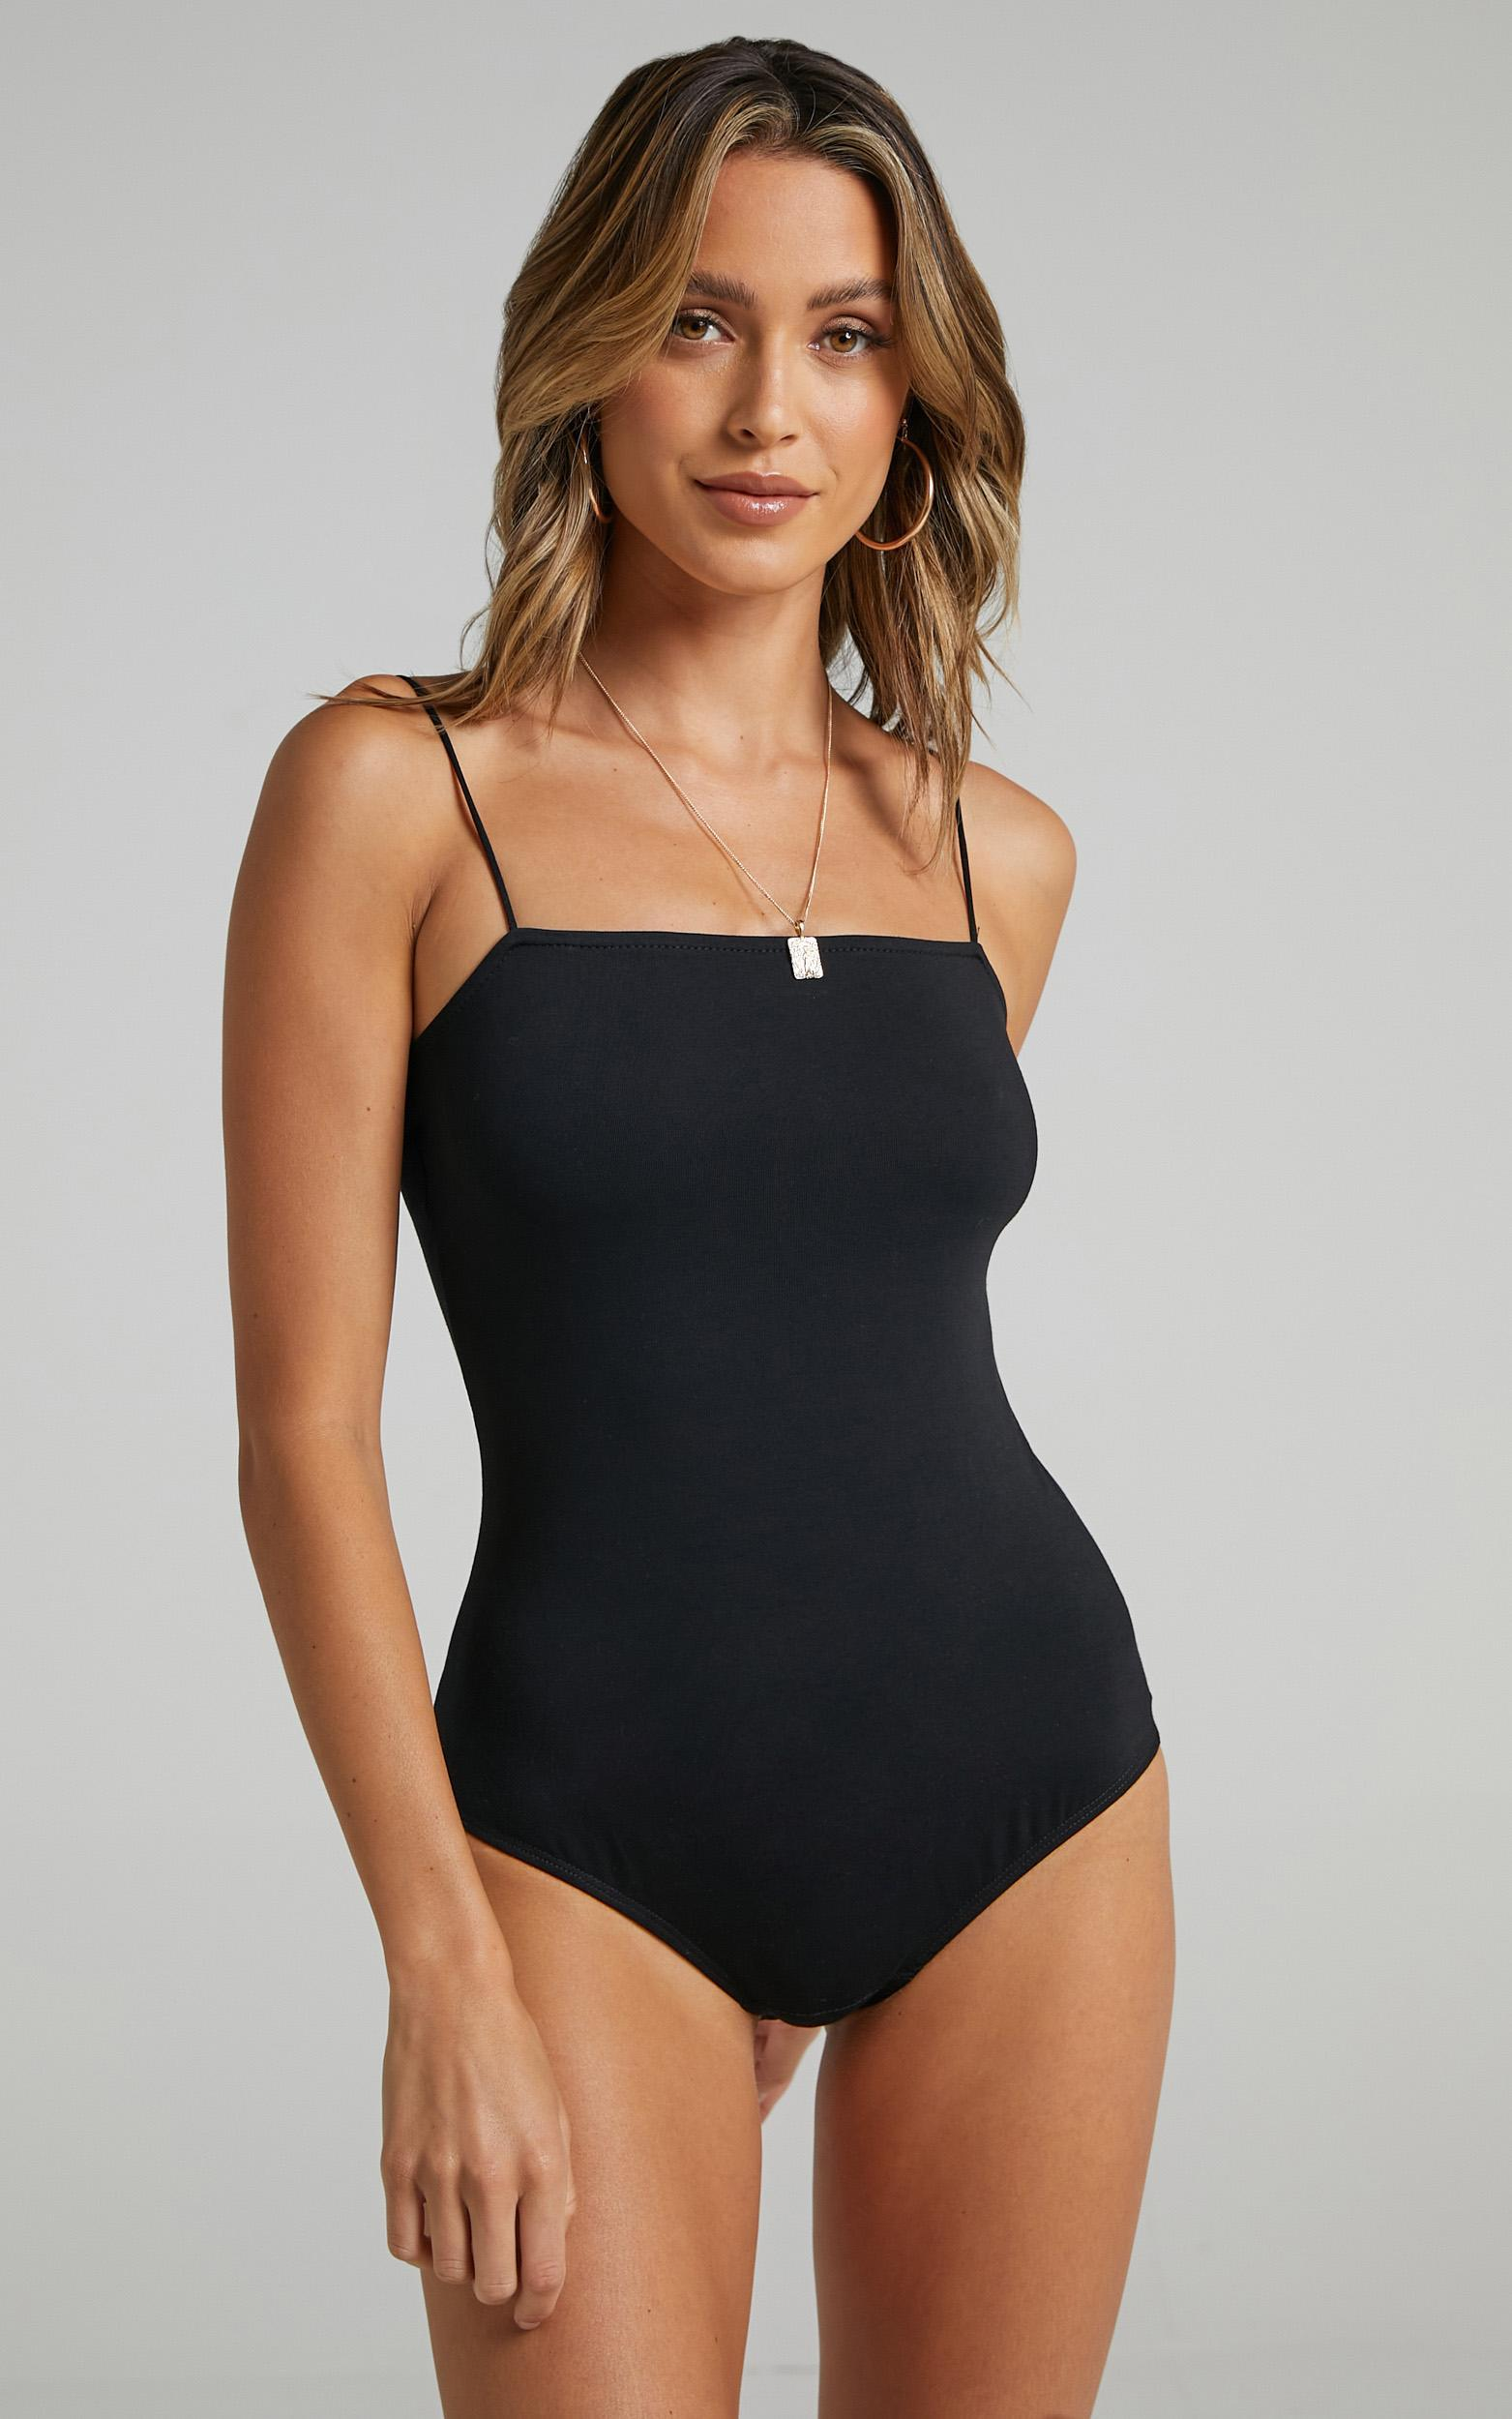 Stitched You Up bodysuit in black - 20 (XXXXL), Black, hi-res image number null